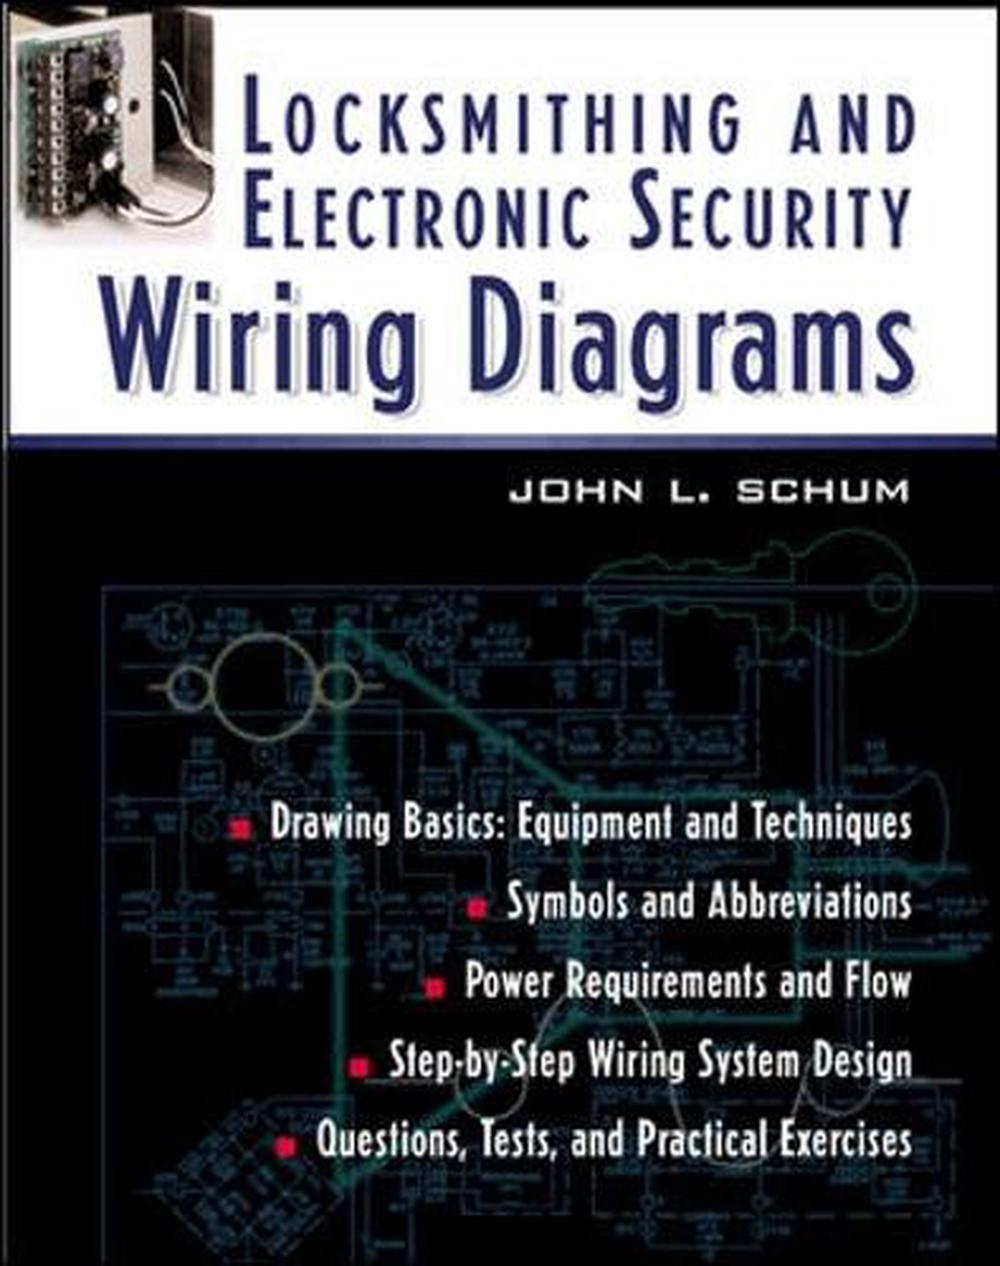 medium resolution of details about locksmithing and electronic security wiring diagrams by j l schum english pap